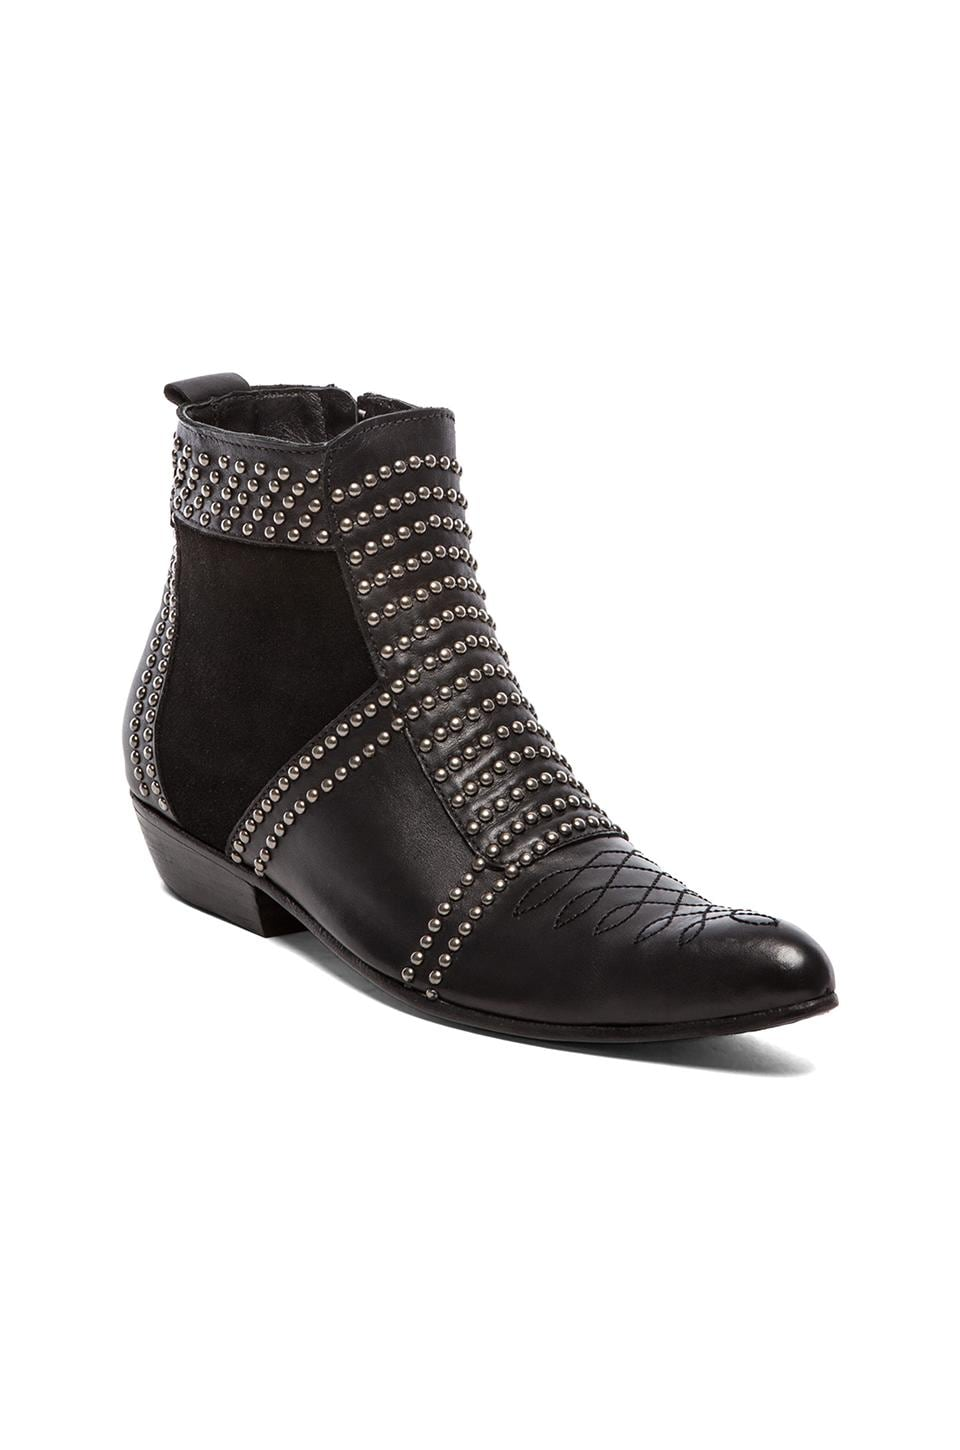 ANINE BING Boots with Studs in Black/Silver